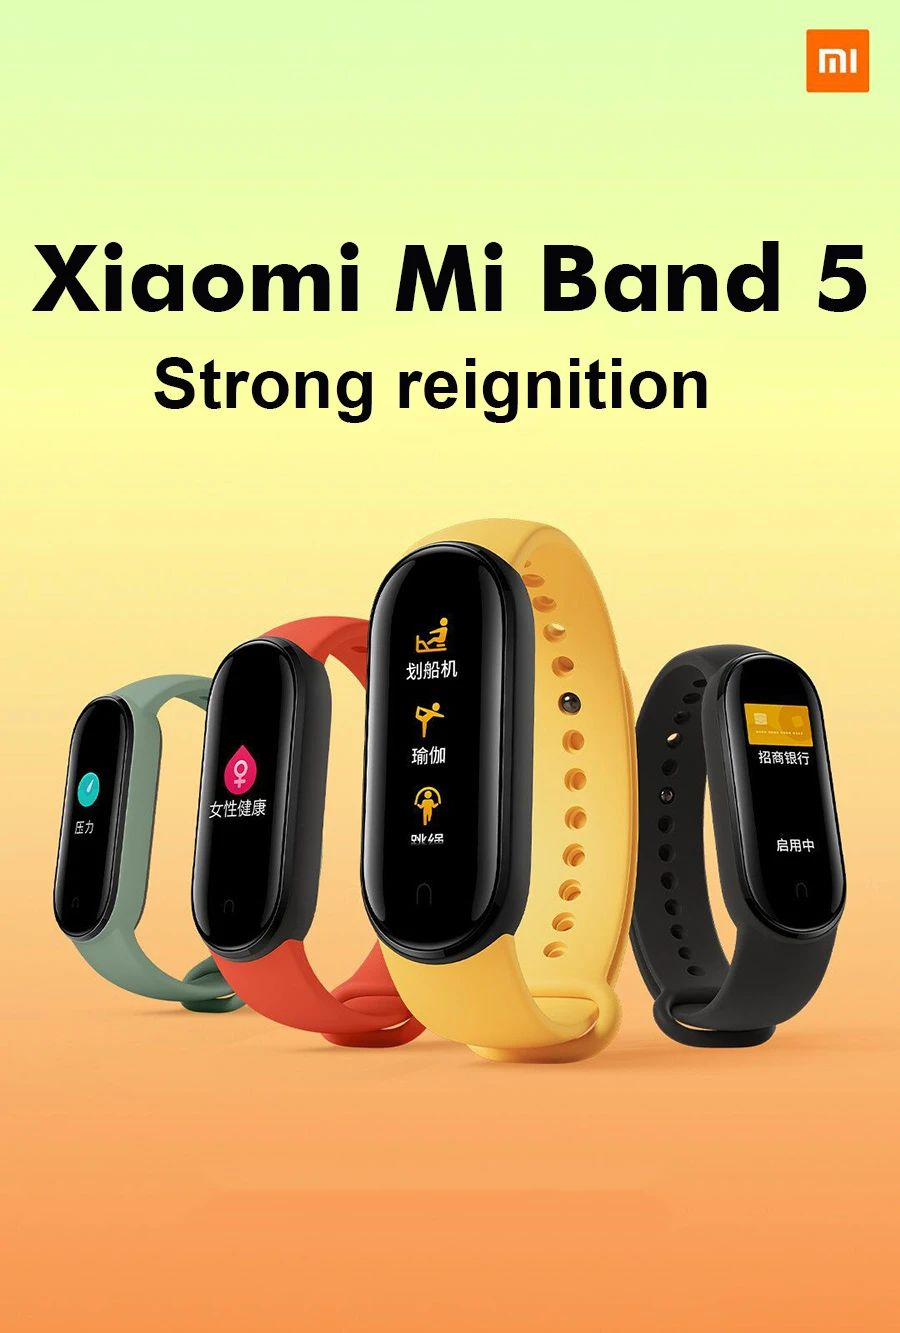 Xiaomi Mi Band 5 Amoled Display Smart Watch (7)